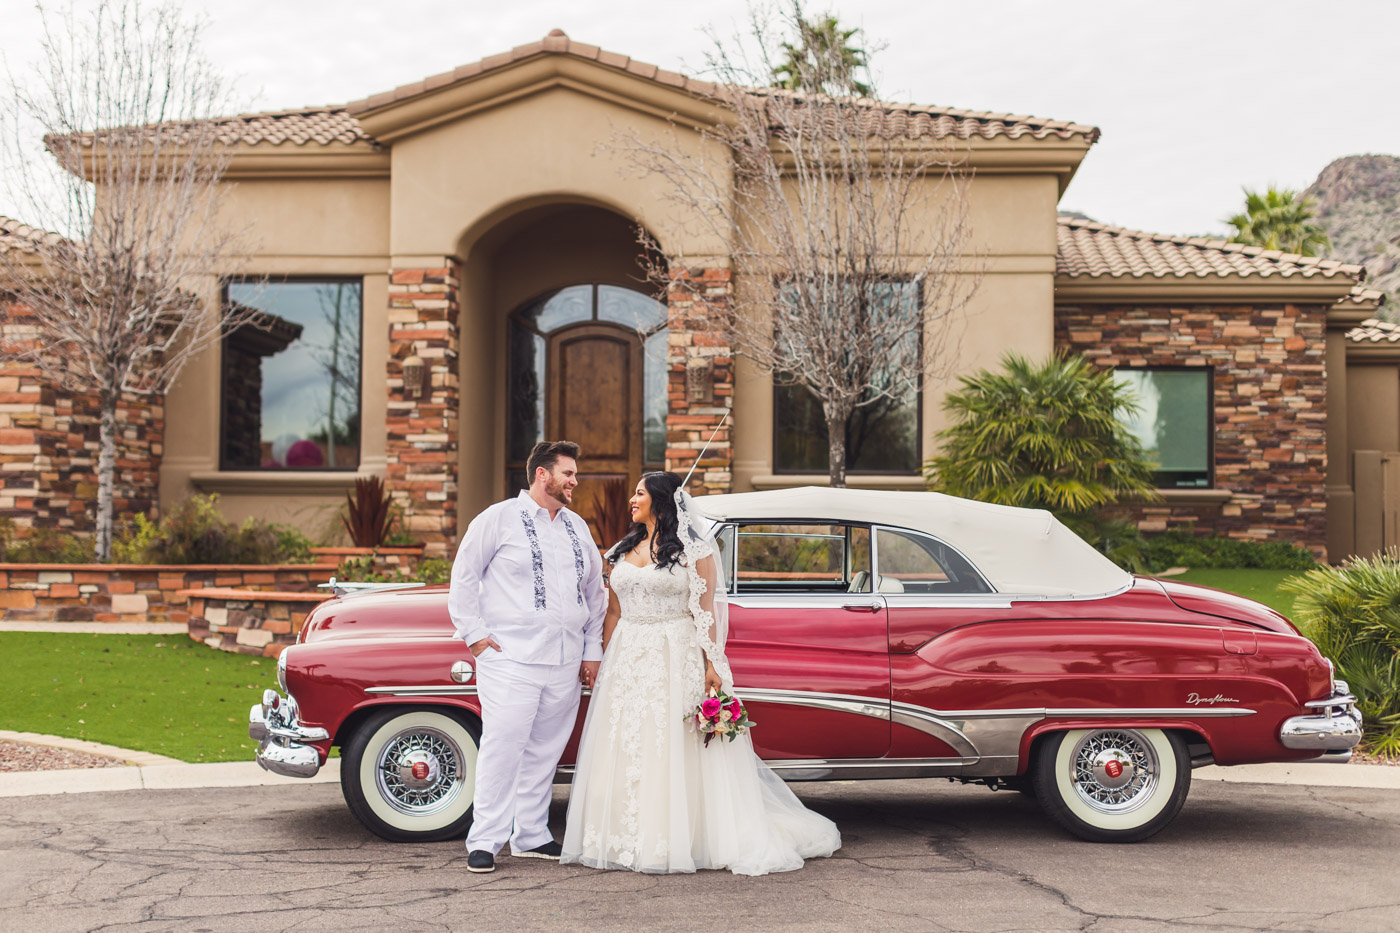 bride-and-groom-in-front-of-classic-car